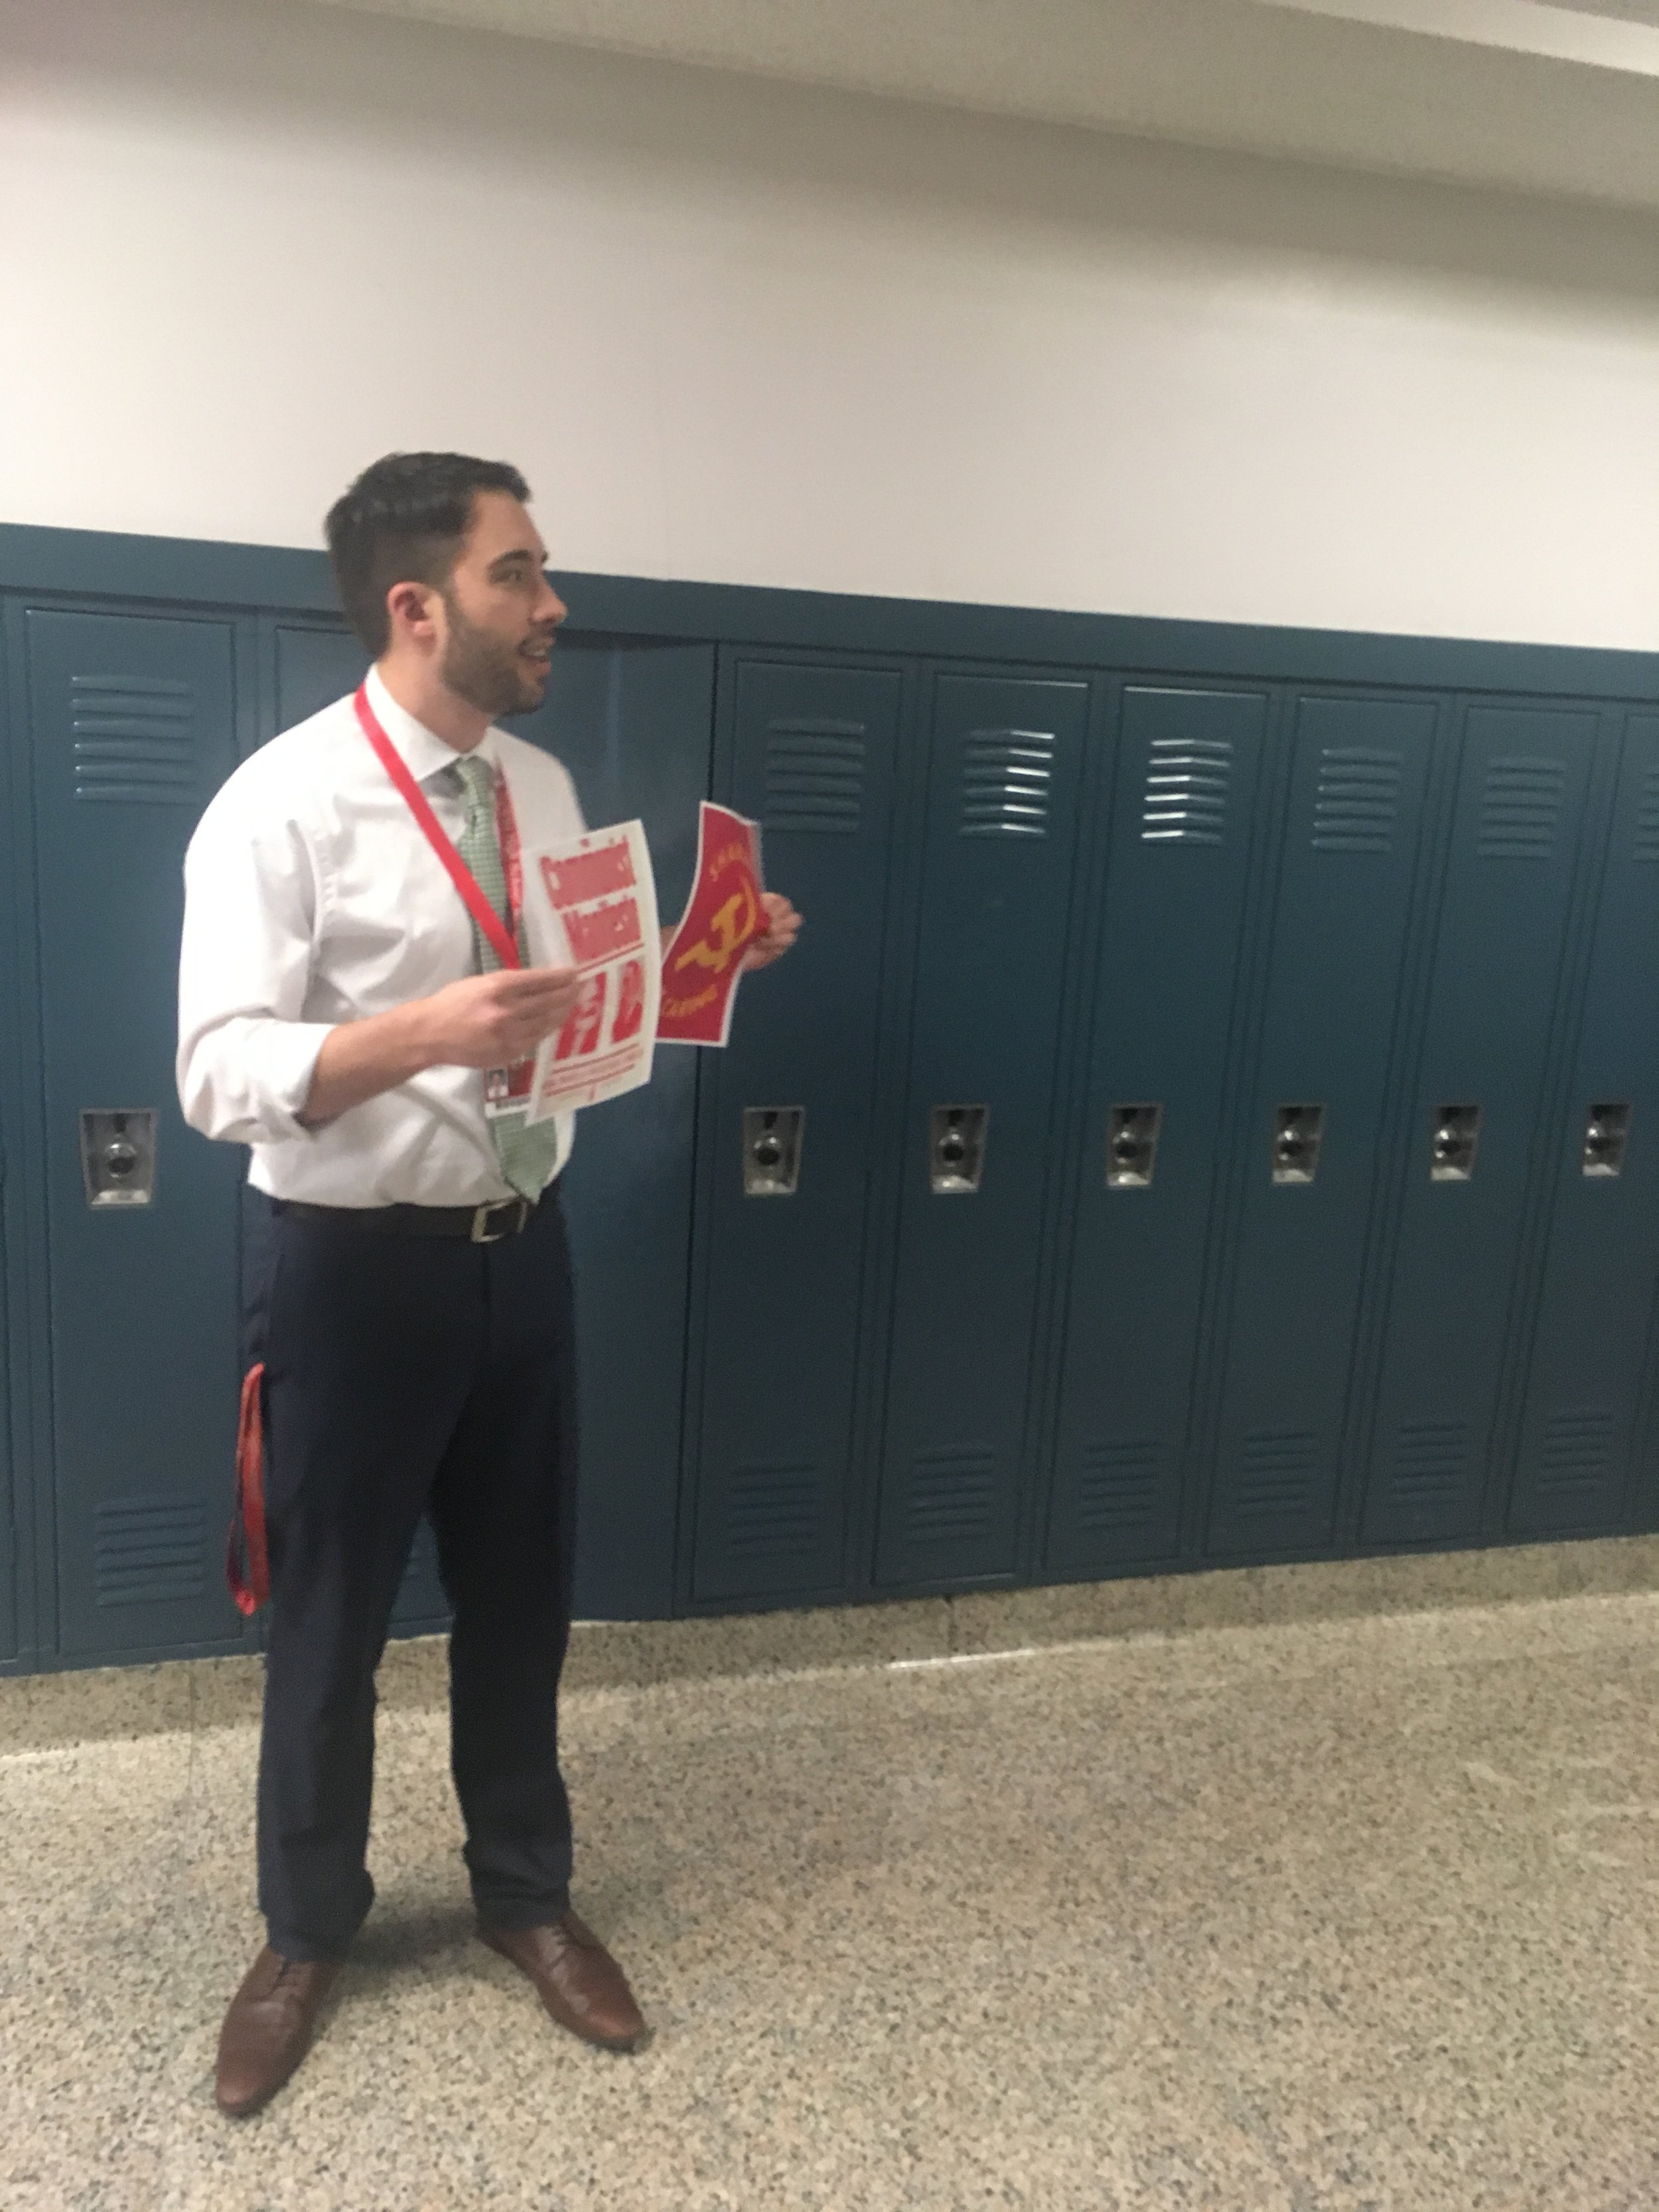 Mr. Berger attempts to gather student support for the Glorious Revolution as blue hall classes dismiss for 4th period lunch.